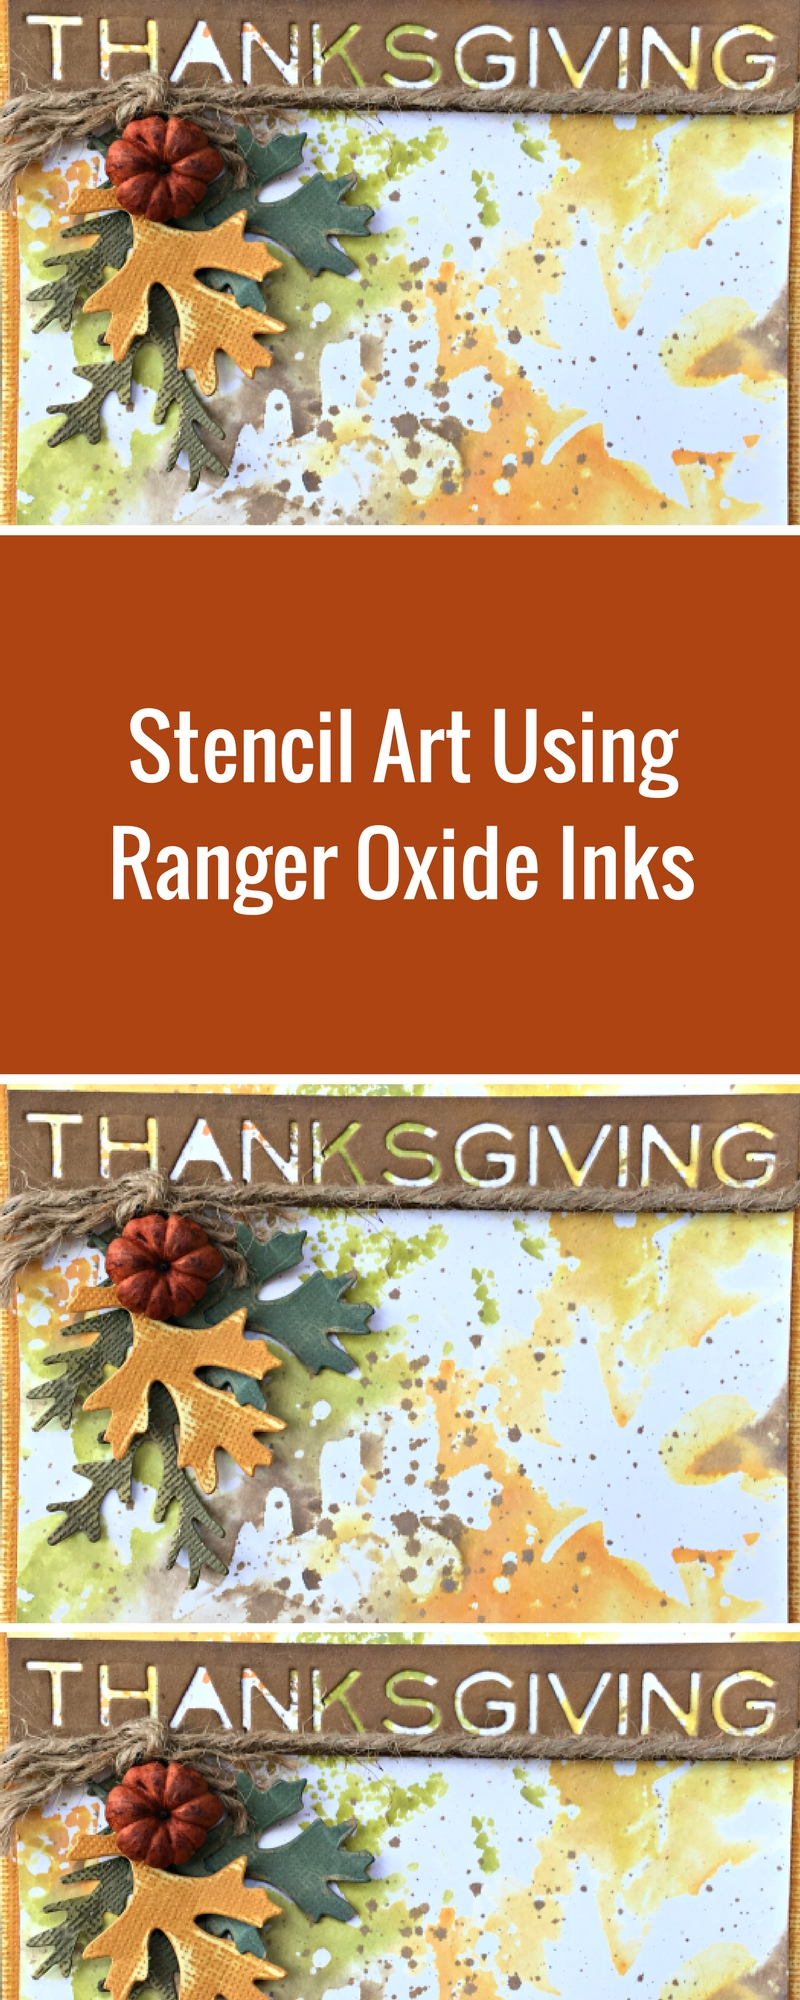 Thanksgiving Card | Stenciling Techniques | How To Use Ranger Oxide Inks | Designed by Nicole Wright | Creative Scrapbooker Magazine #thanksgiving #cardmaking #stencils